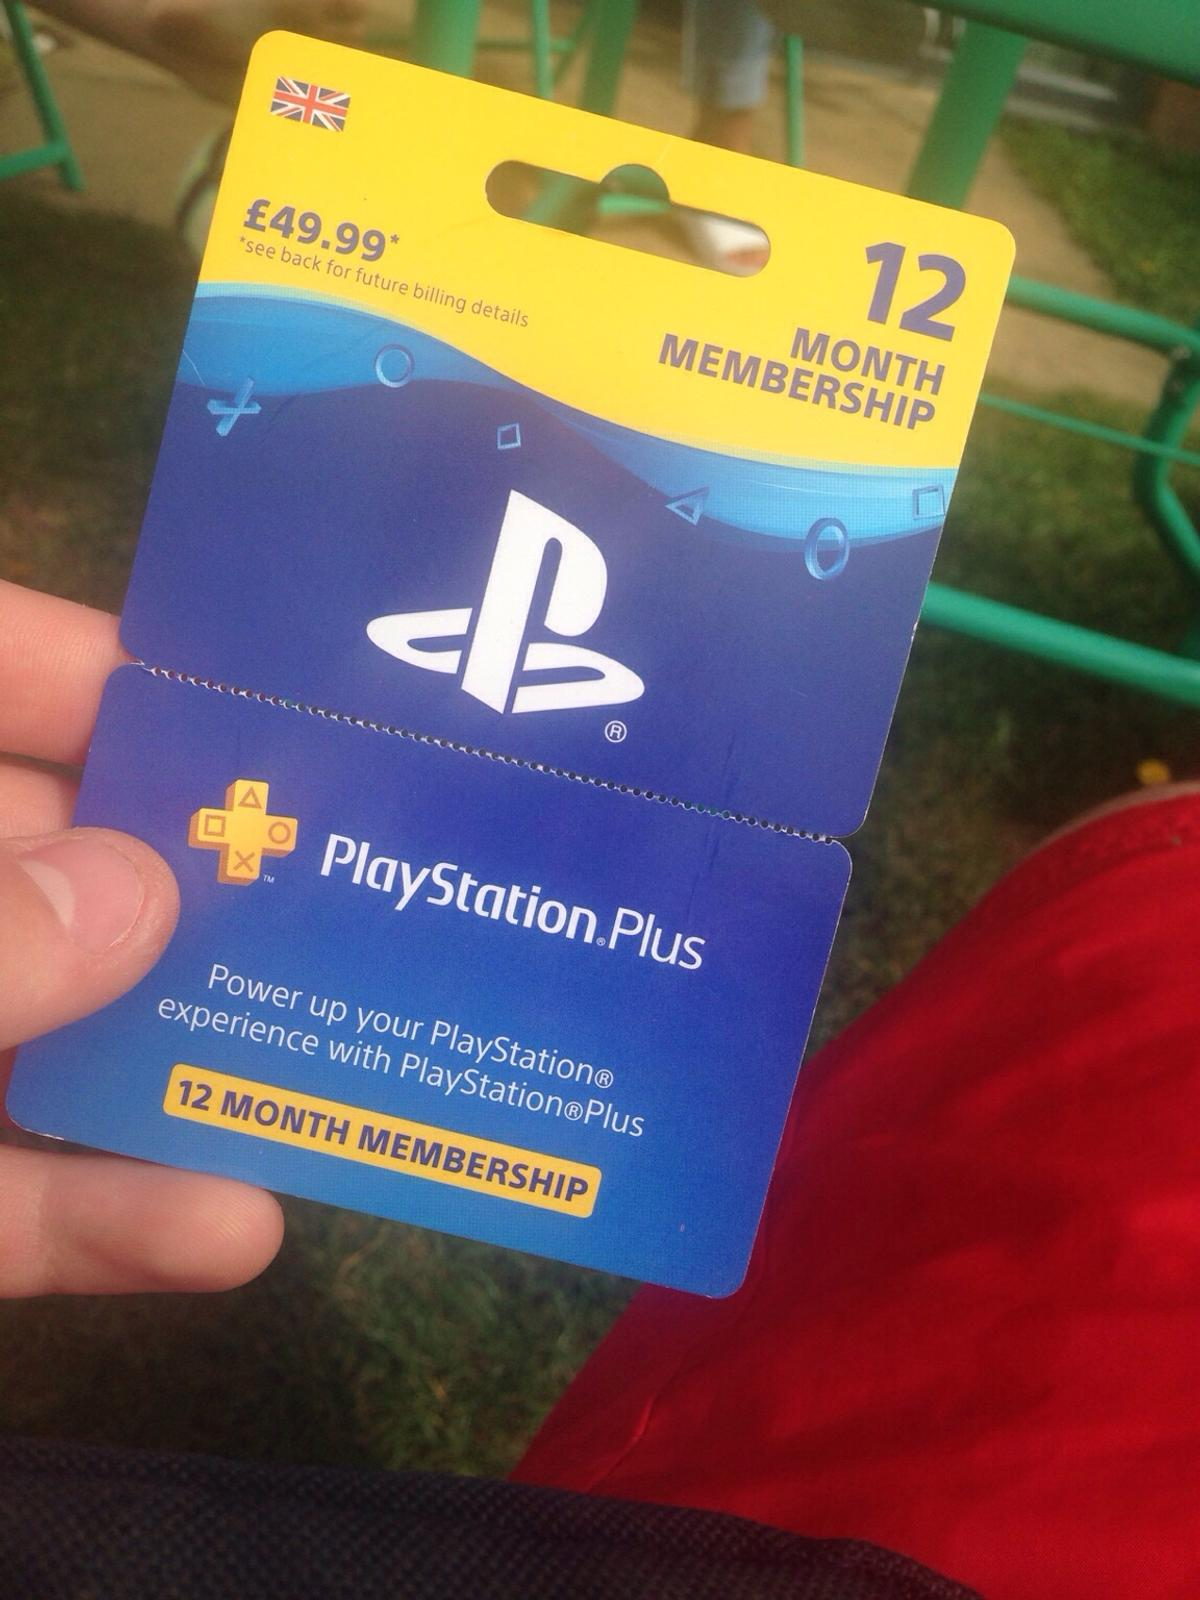 Ps4 Gift Card I Paid 50 Selling For 20 In B37 Solihull For 20 00 For Sale Shpock